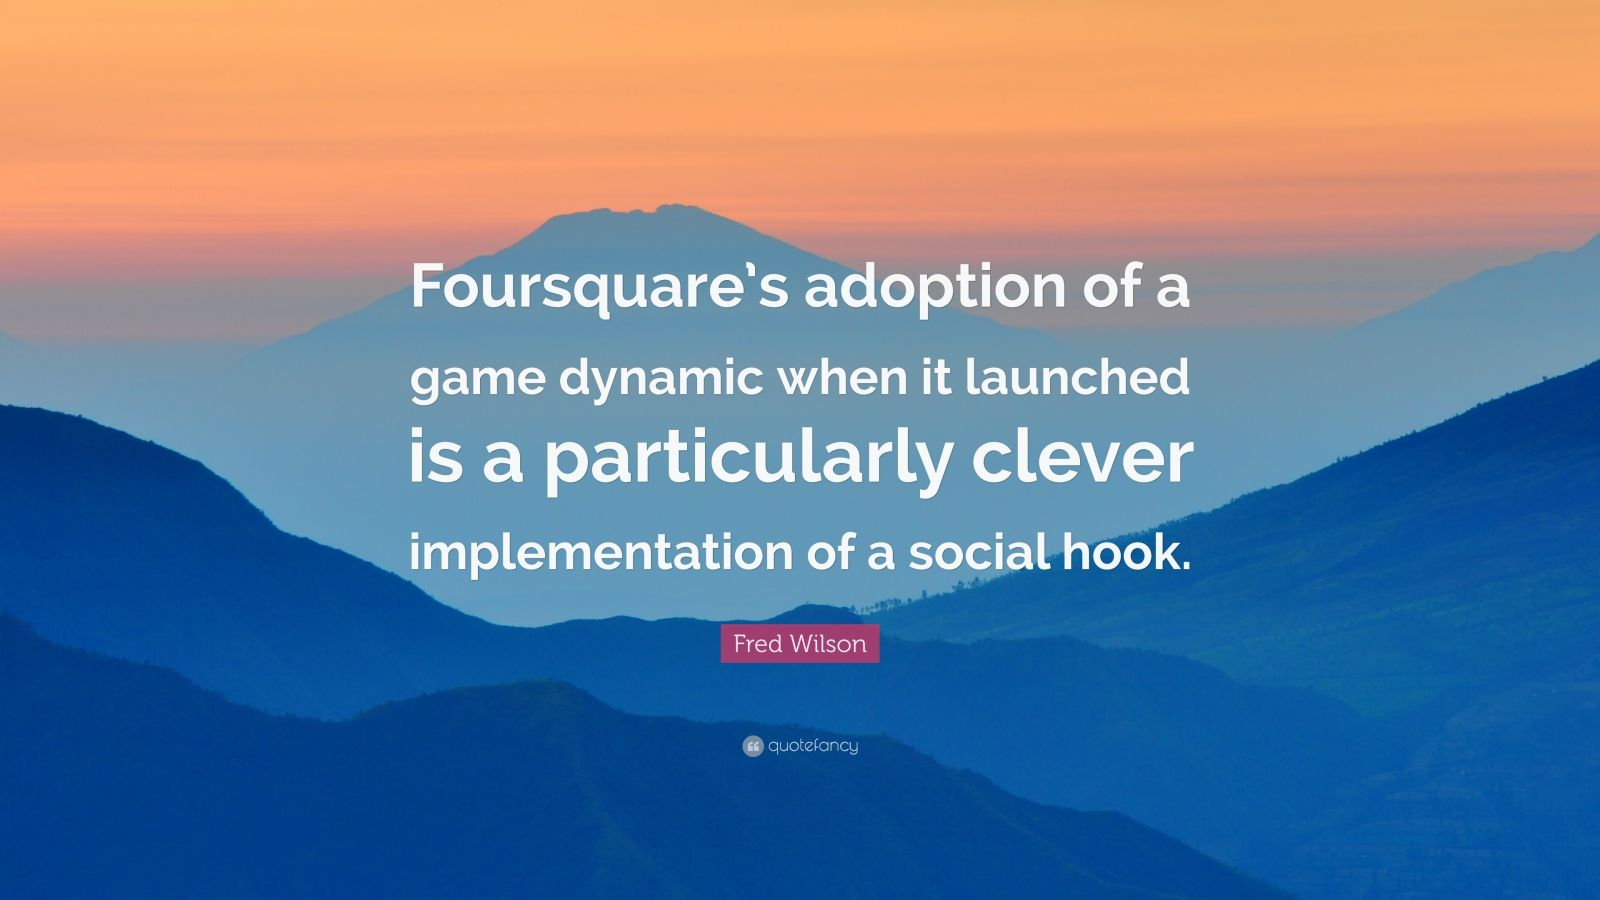 """Fred Wilson Quote: """"Foursquare's adoption of a game dynamic when it launched is a particularly clever implementation of a social hook."""""""